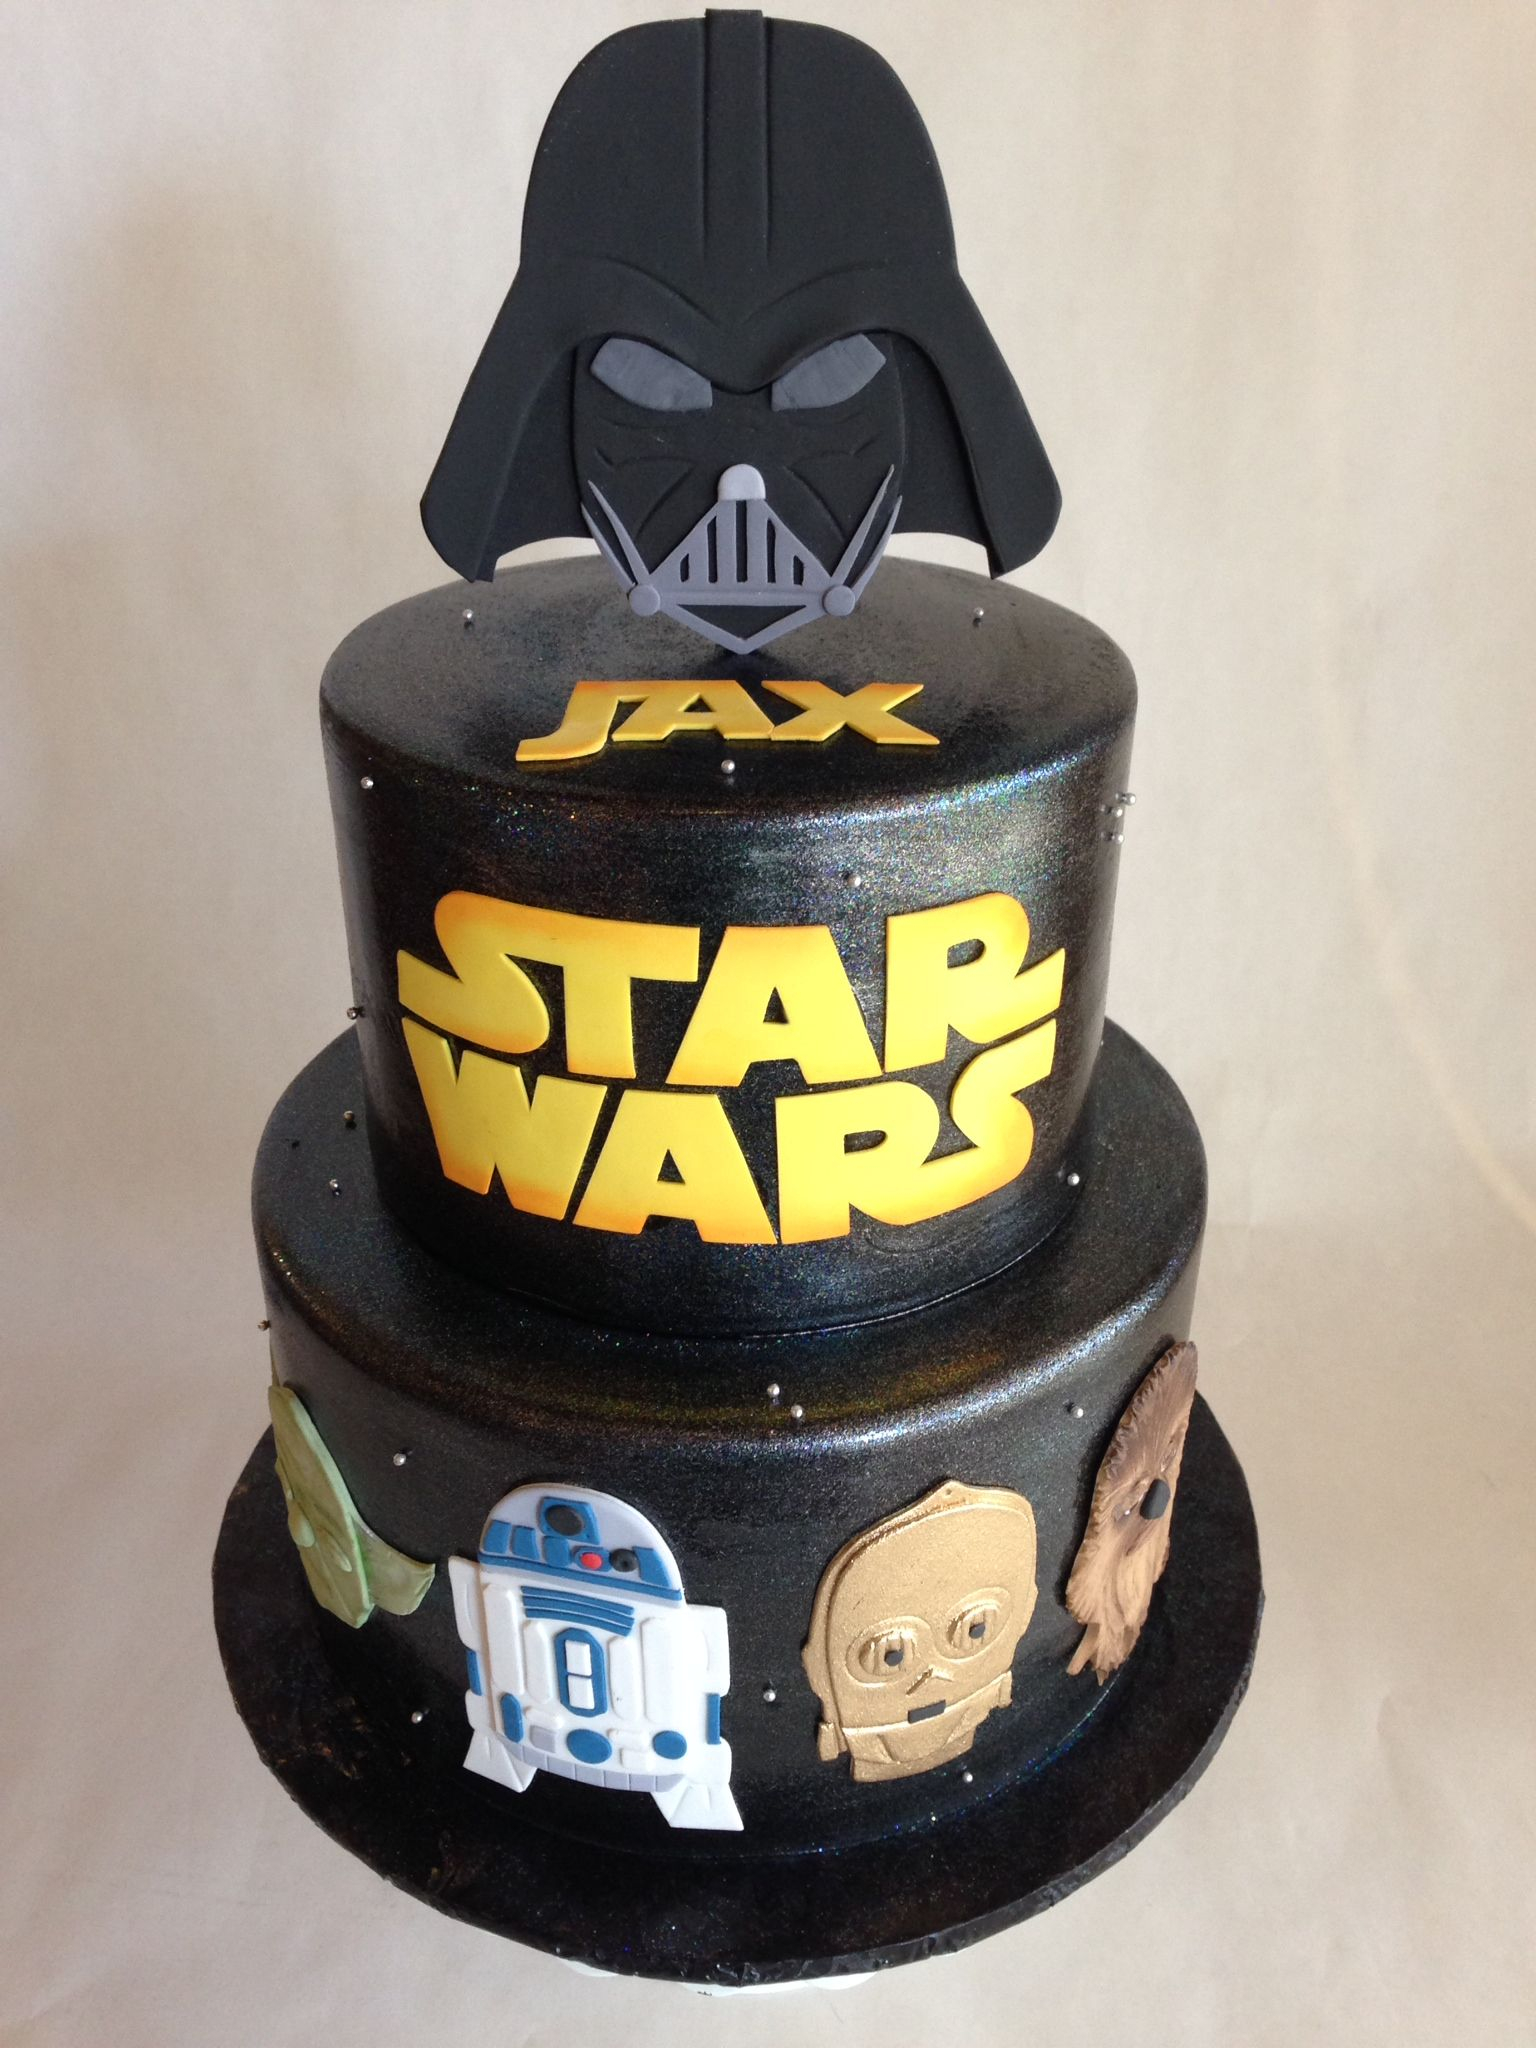 Darth Vader Birthday Cake Birthday Cake Star Wars Fondant Darth Vader R2d2 Yoda